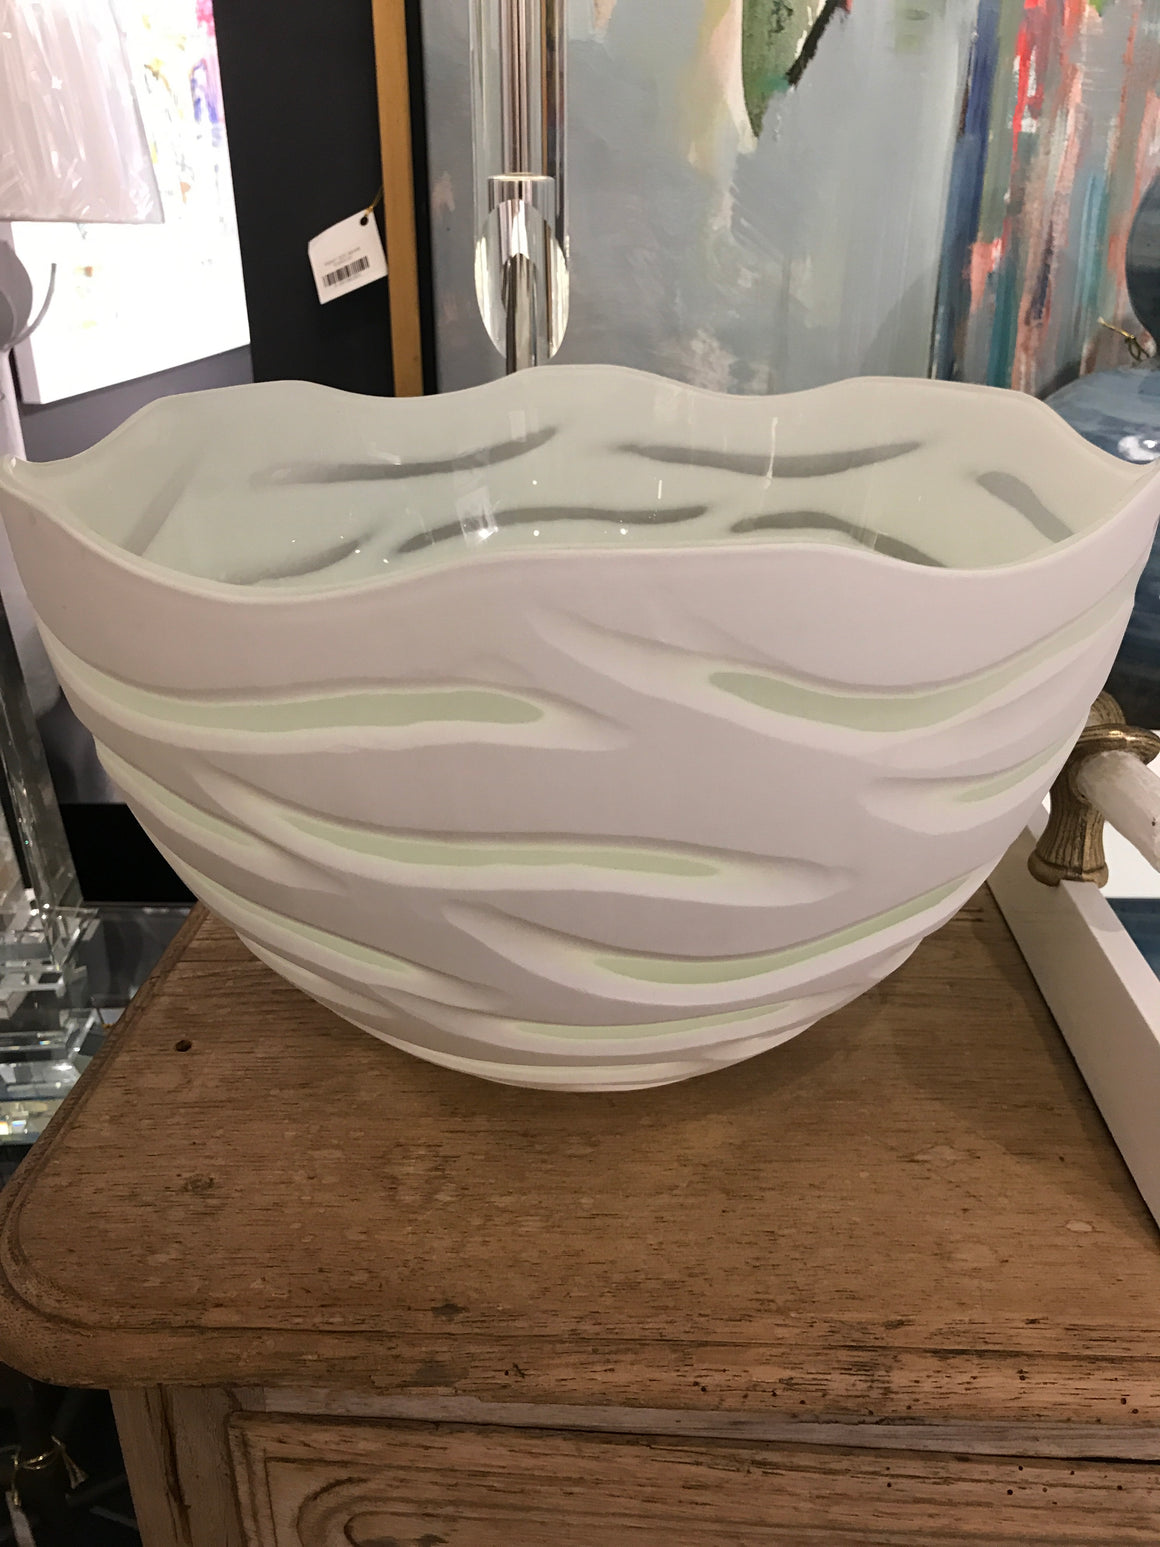 WhiteTigera bowl